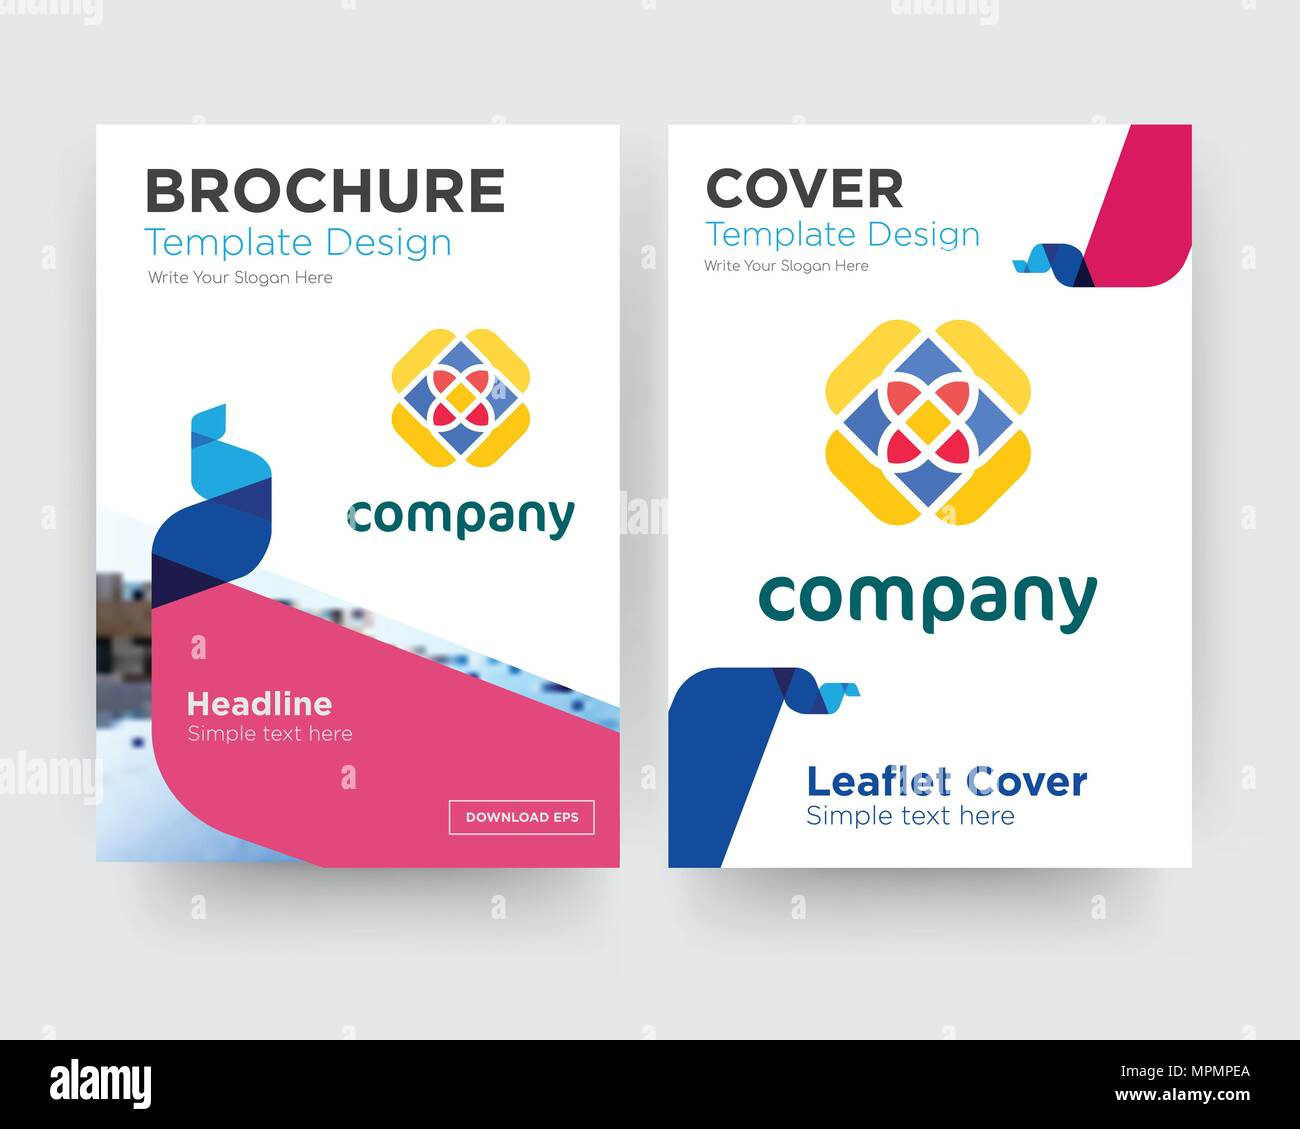 free brochure flyer design template with abstract photo background